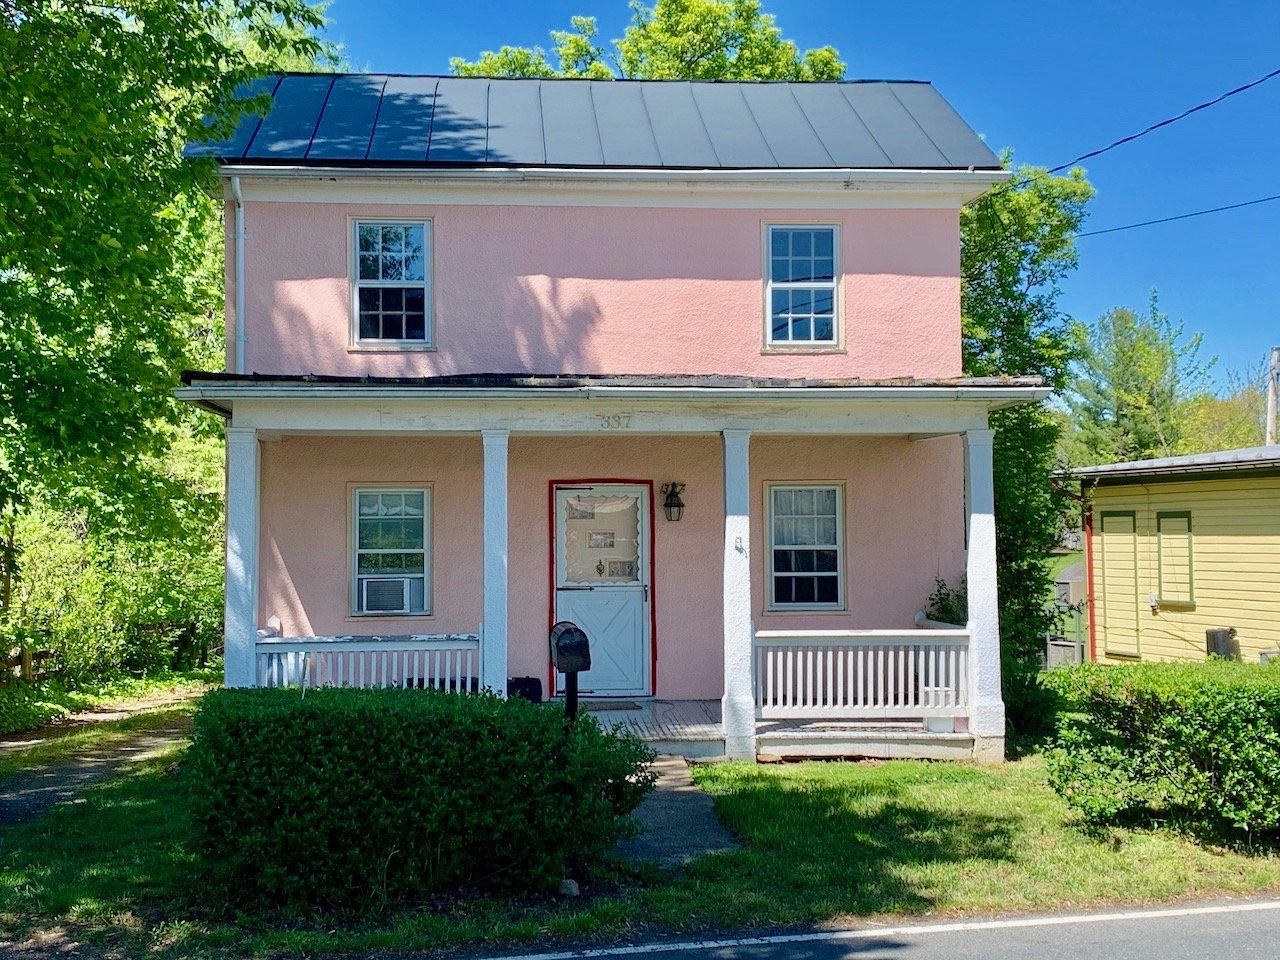 3 BR/1.5 BA Home on .35 +/- Acre Lot in the Town of Hamilton, VA--SELLS to the HIGHEST BIDDER!!